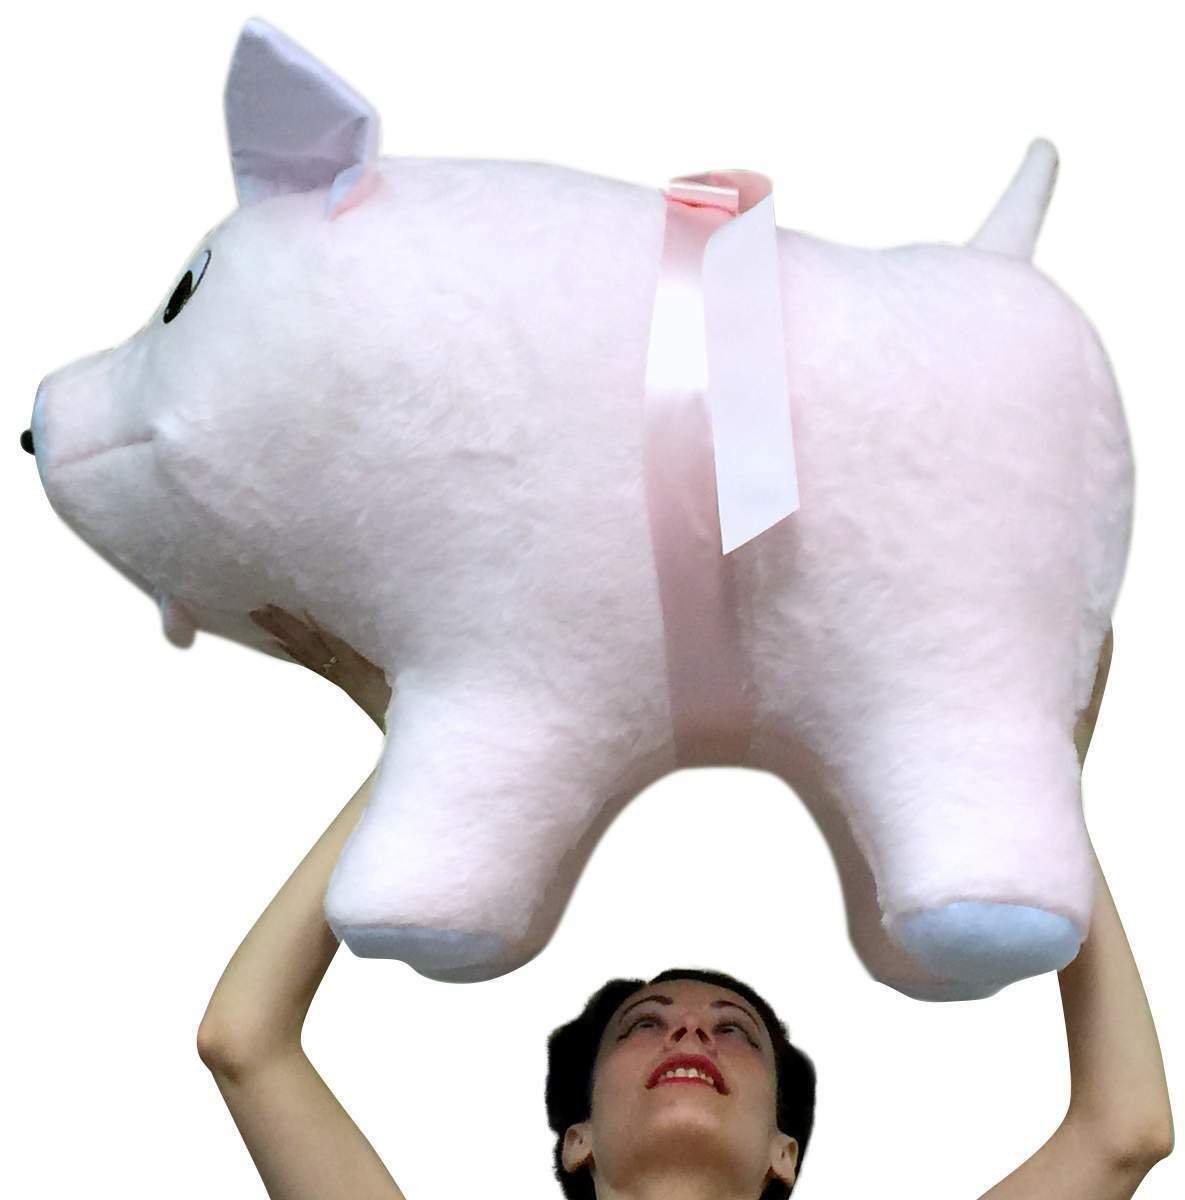 American Made Giant Stuffed Pink Pig 32 Inch Soft Made in USA America Brand New - $147.21